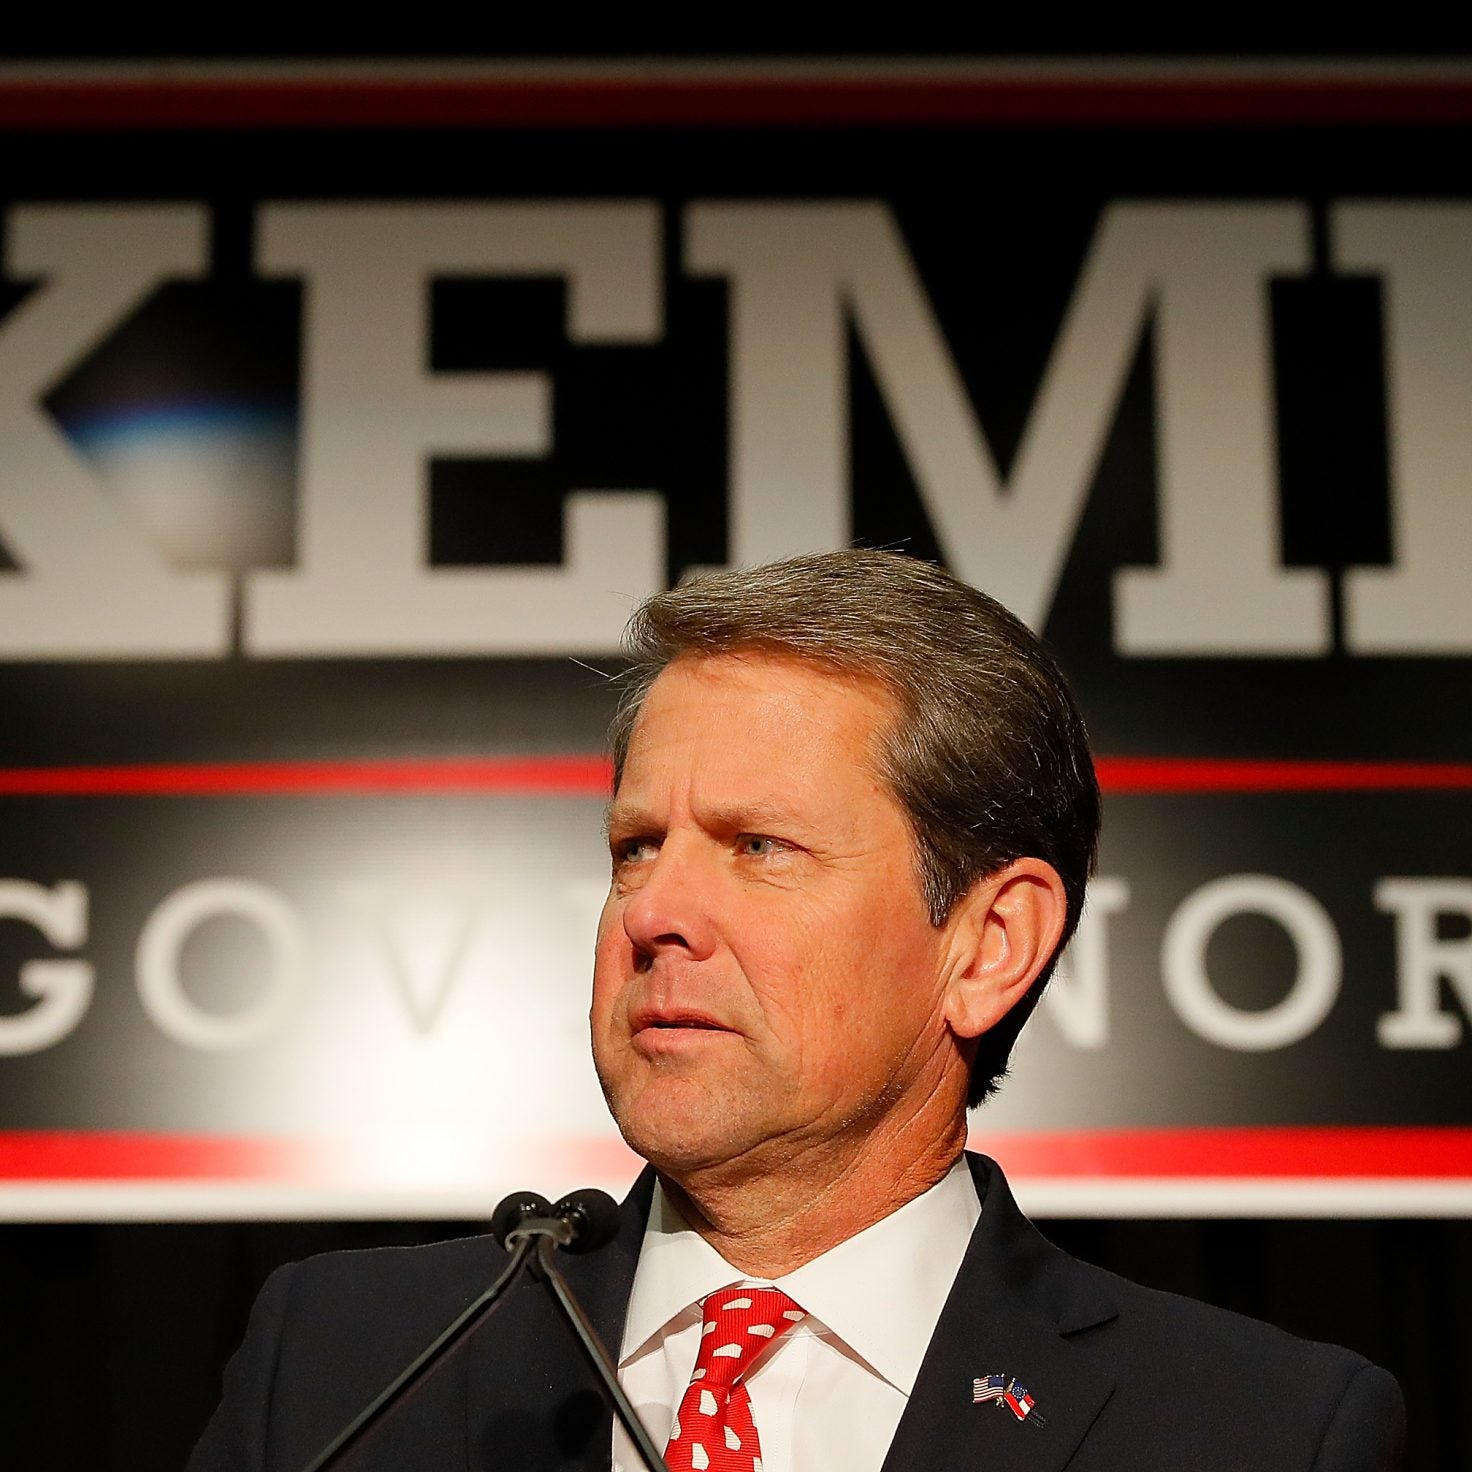 Mayor Of Georgia Coastal City Lashes Out At Governor's Order To Reopen Beaches